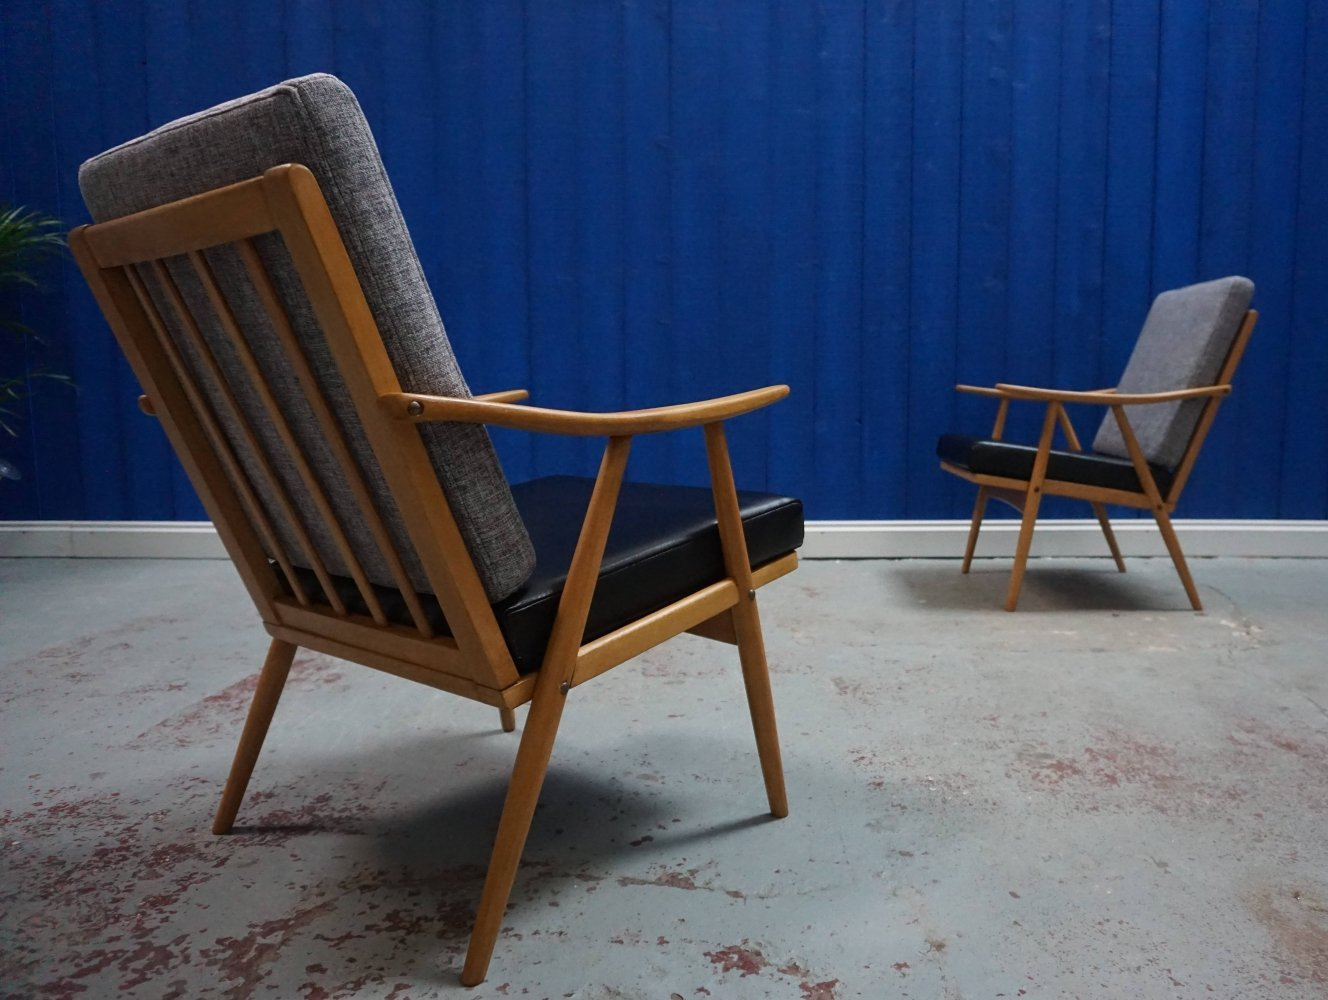 Pair of Mid Century Modern Czech Armchairs by Thonet, 1960